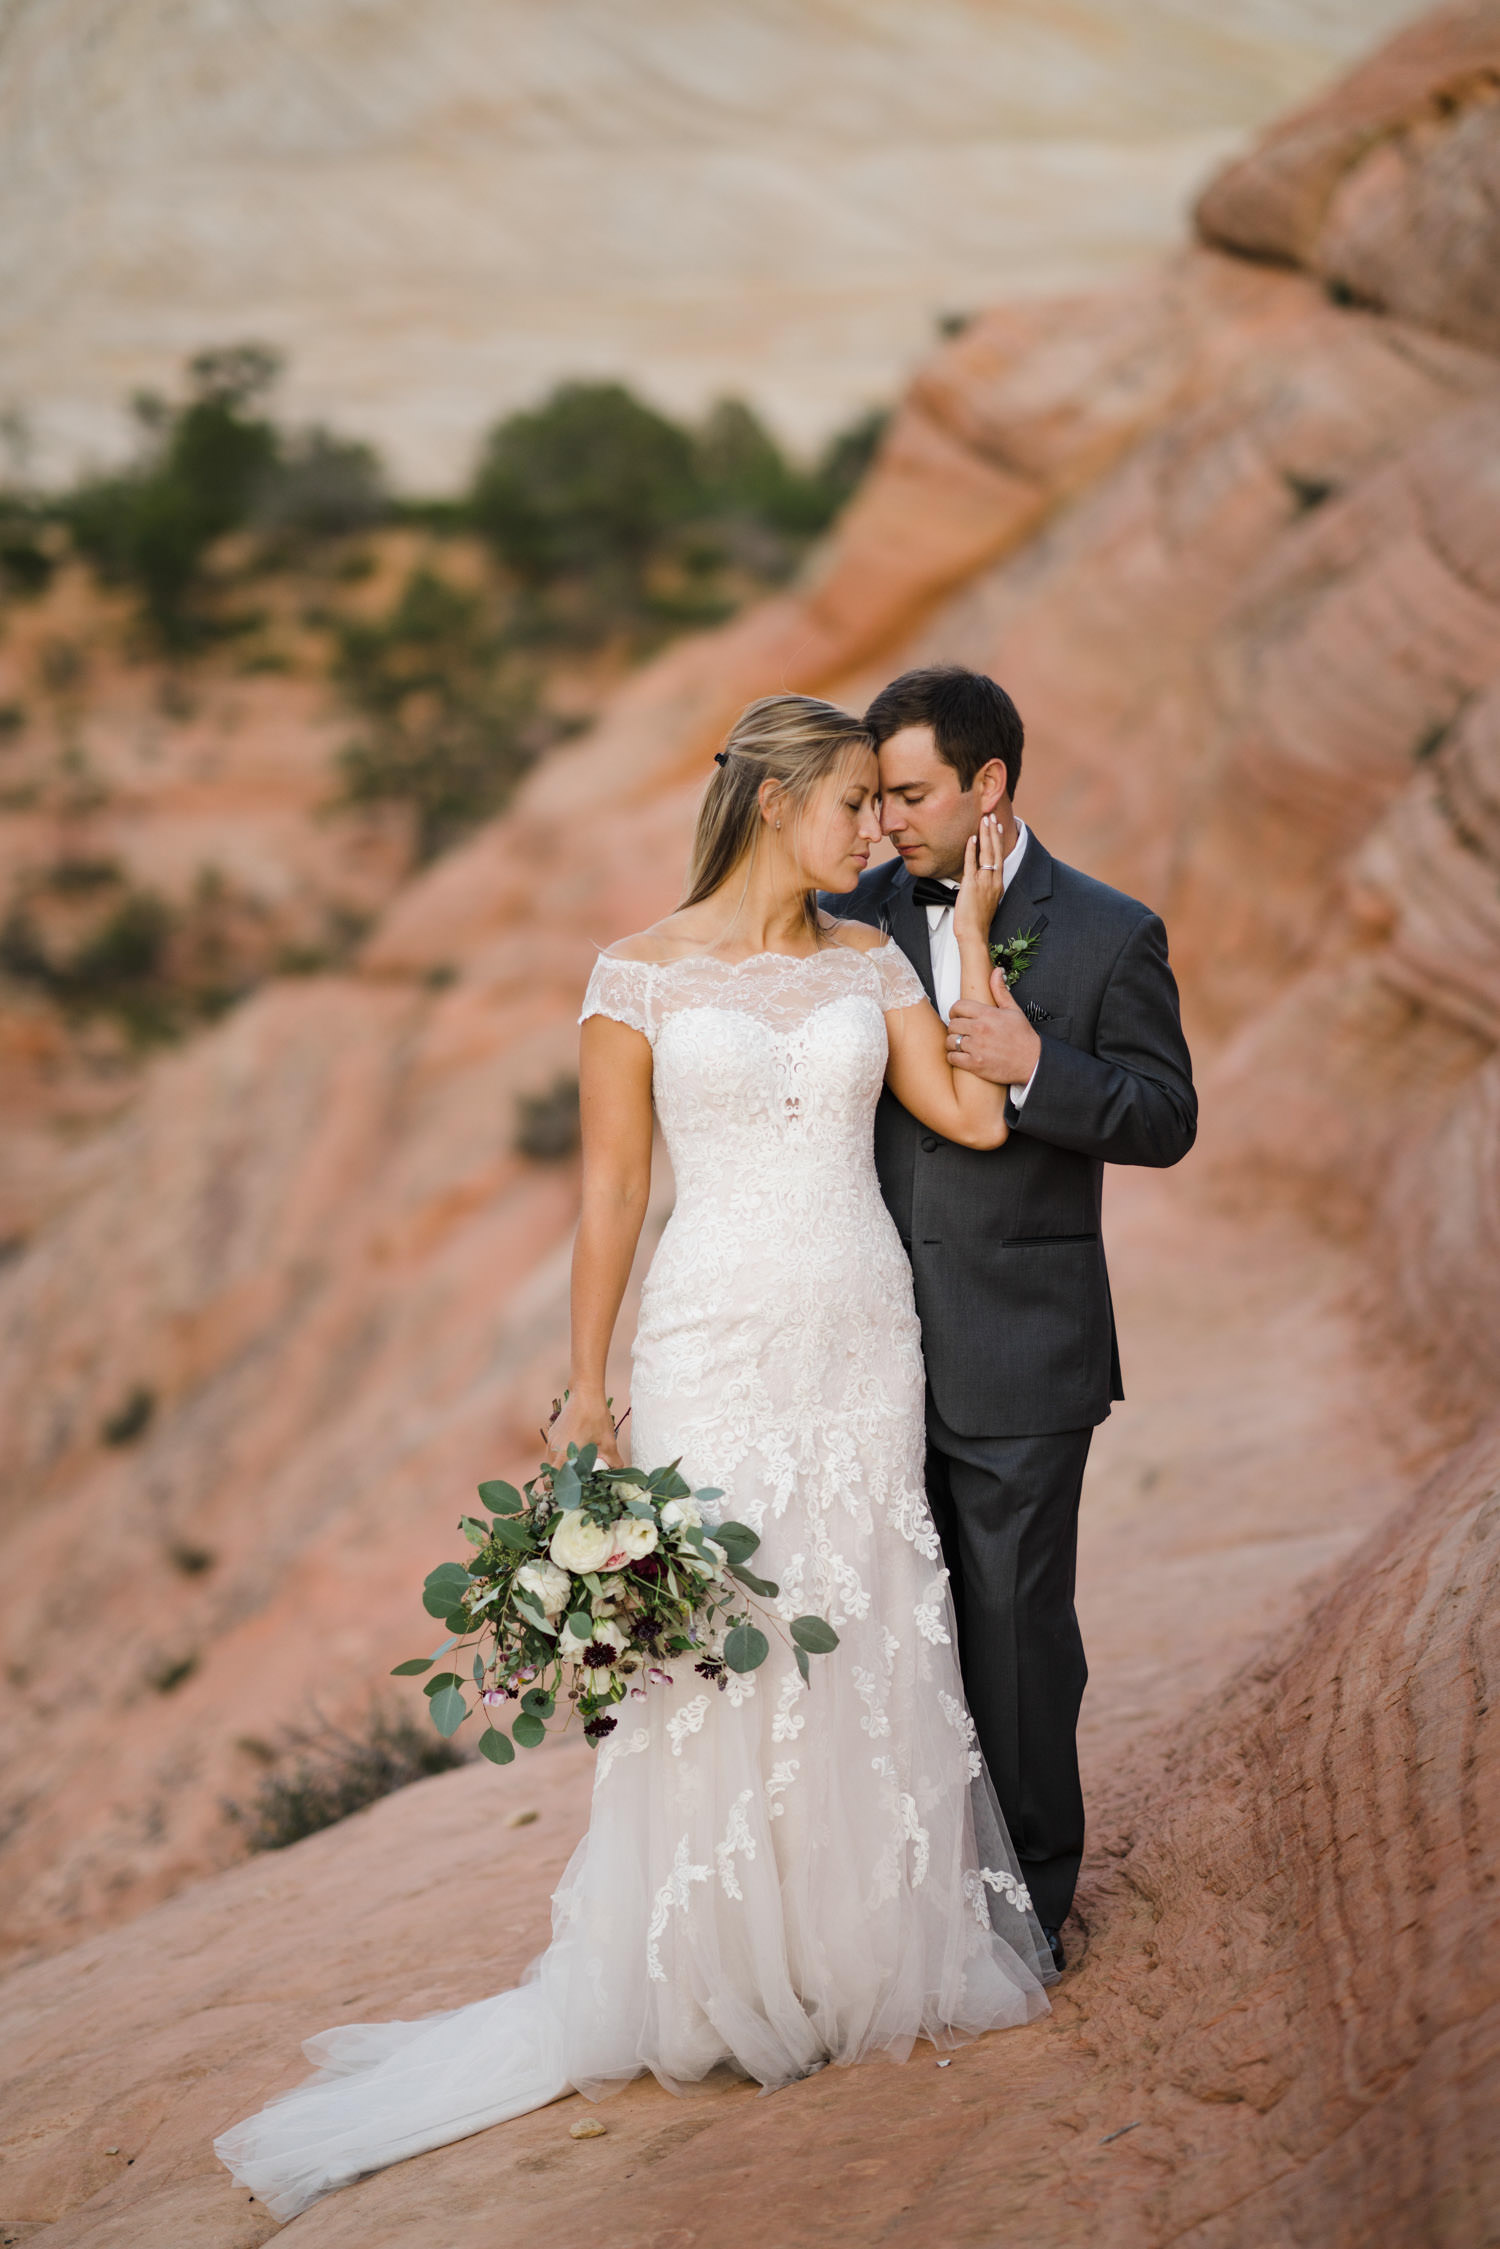 Zion National Park wedding bride and groom outside with bridal bouquet photo